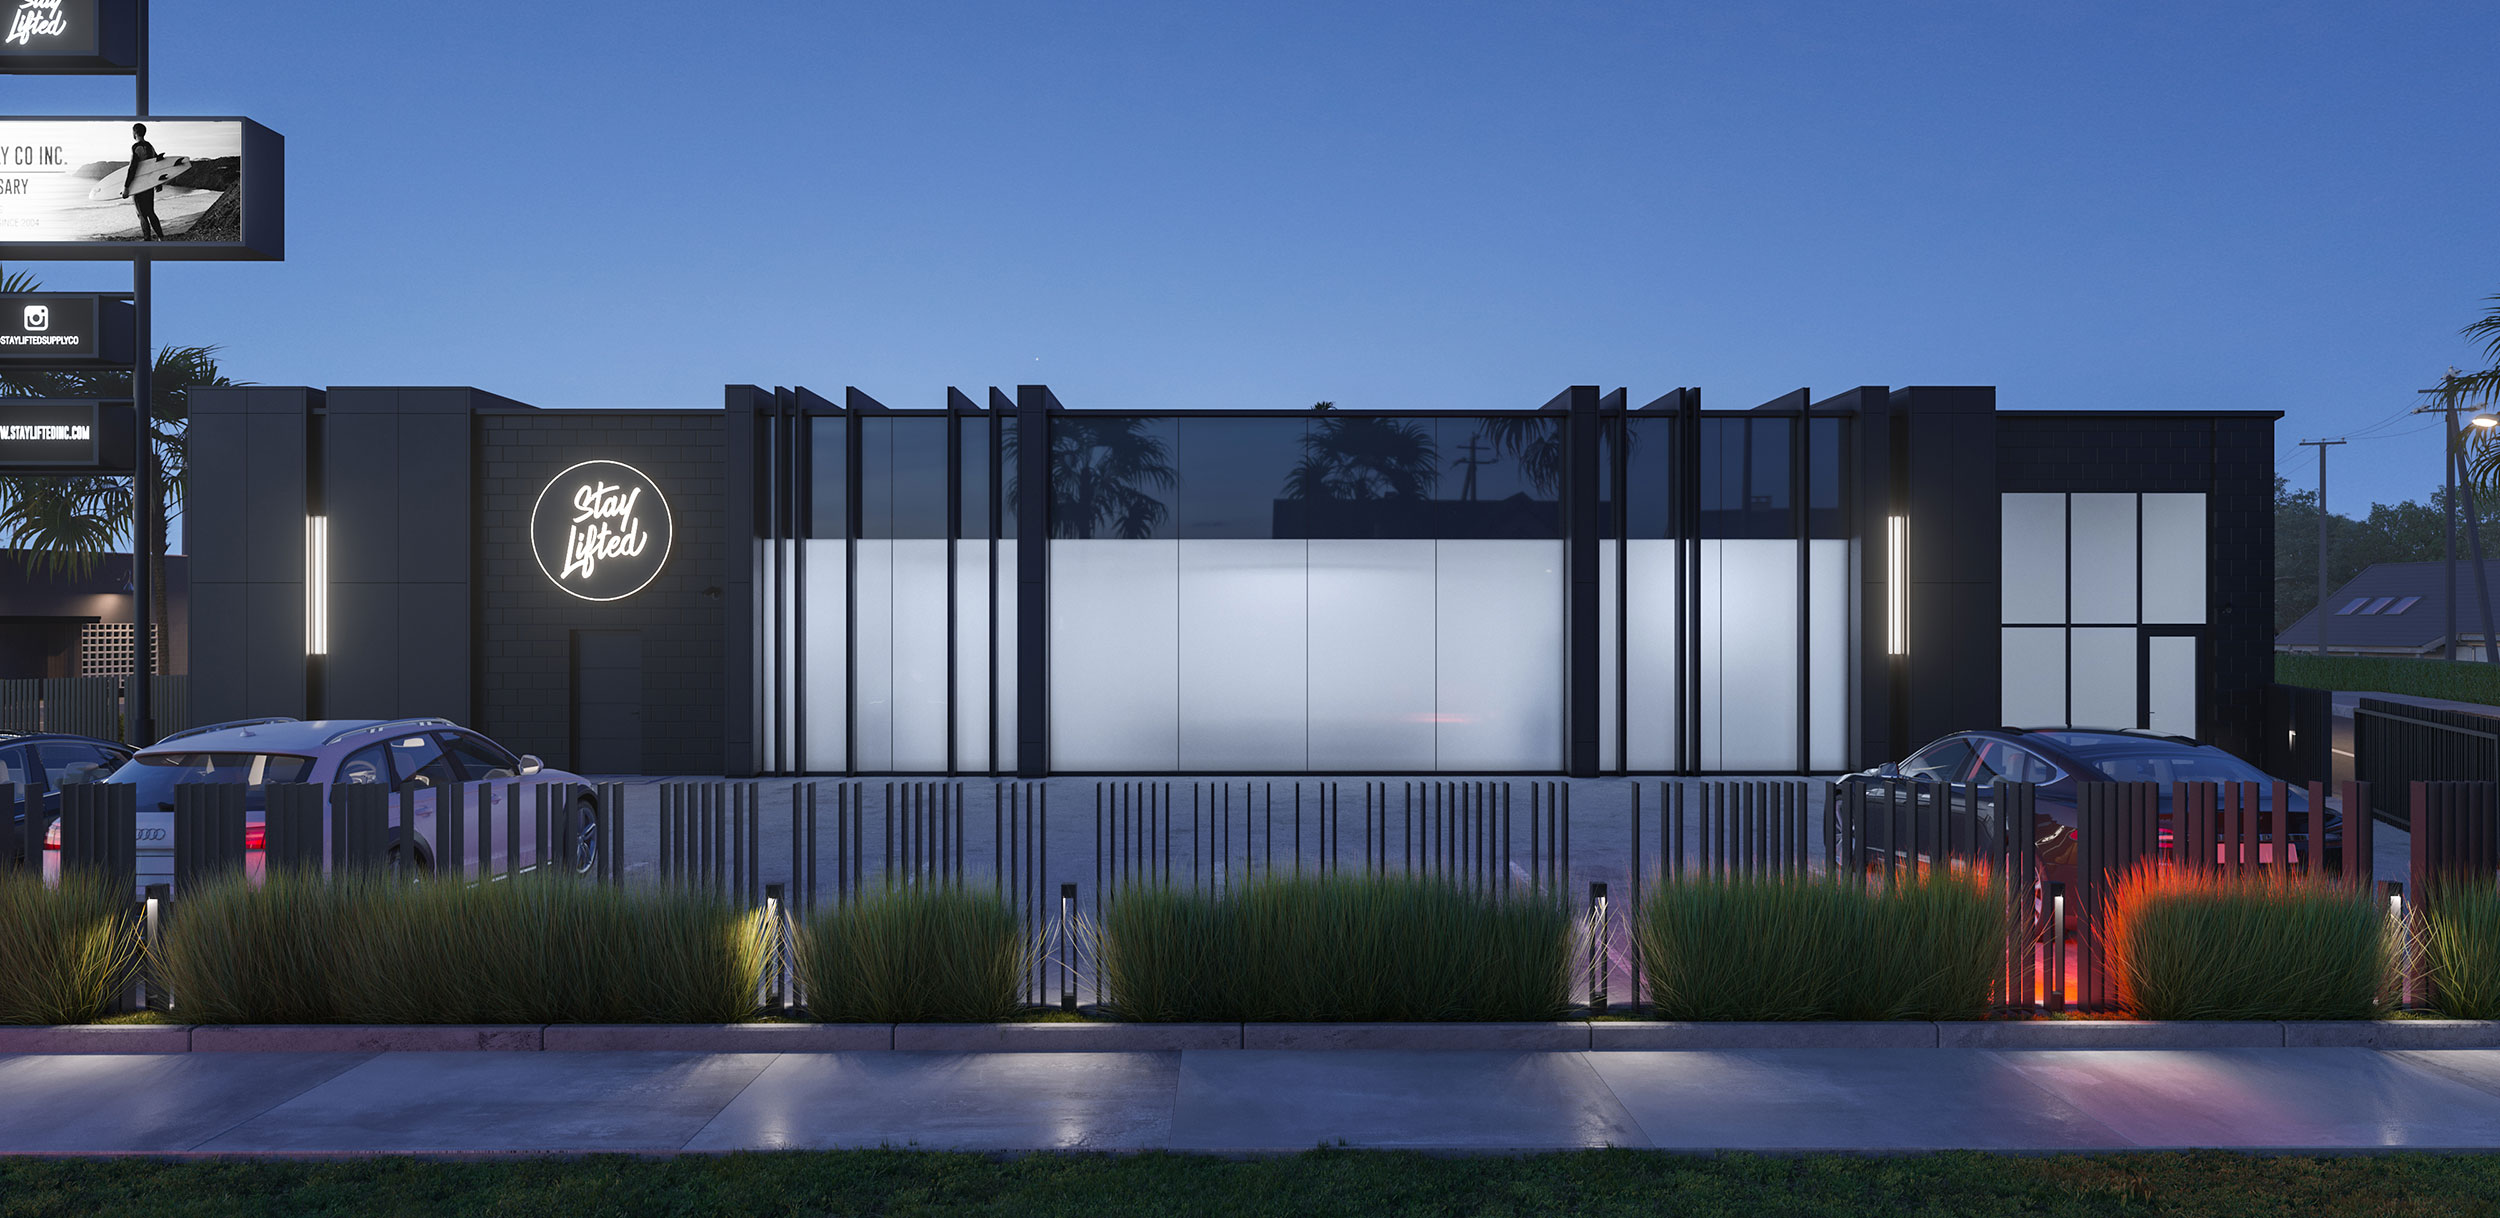 staylifted-cannabis-dispensary-culver-city-archillusion-design-02.jpg